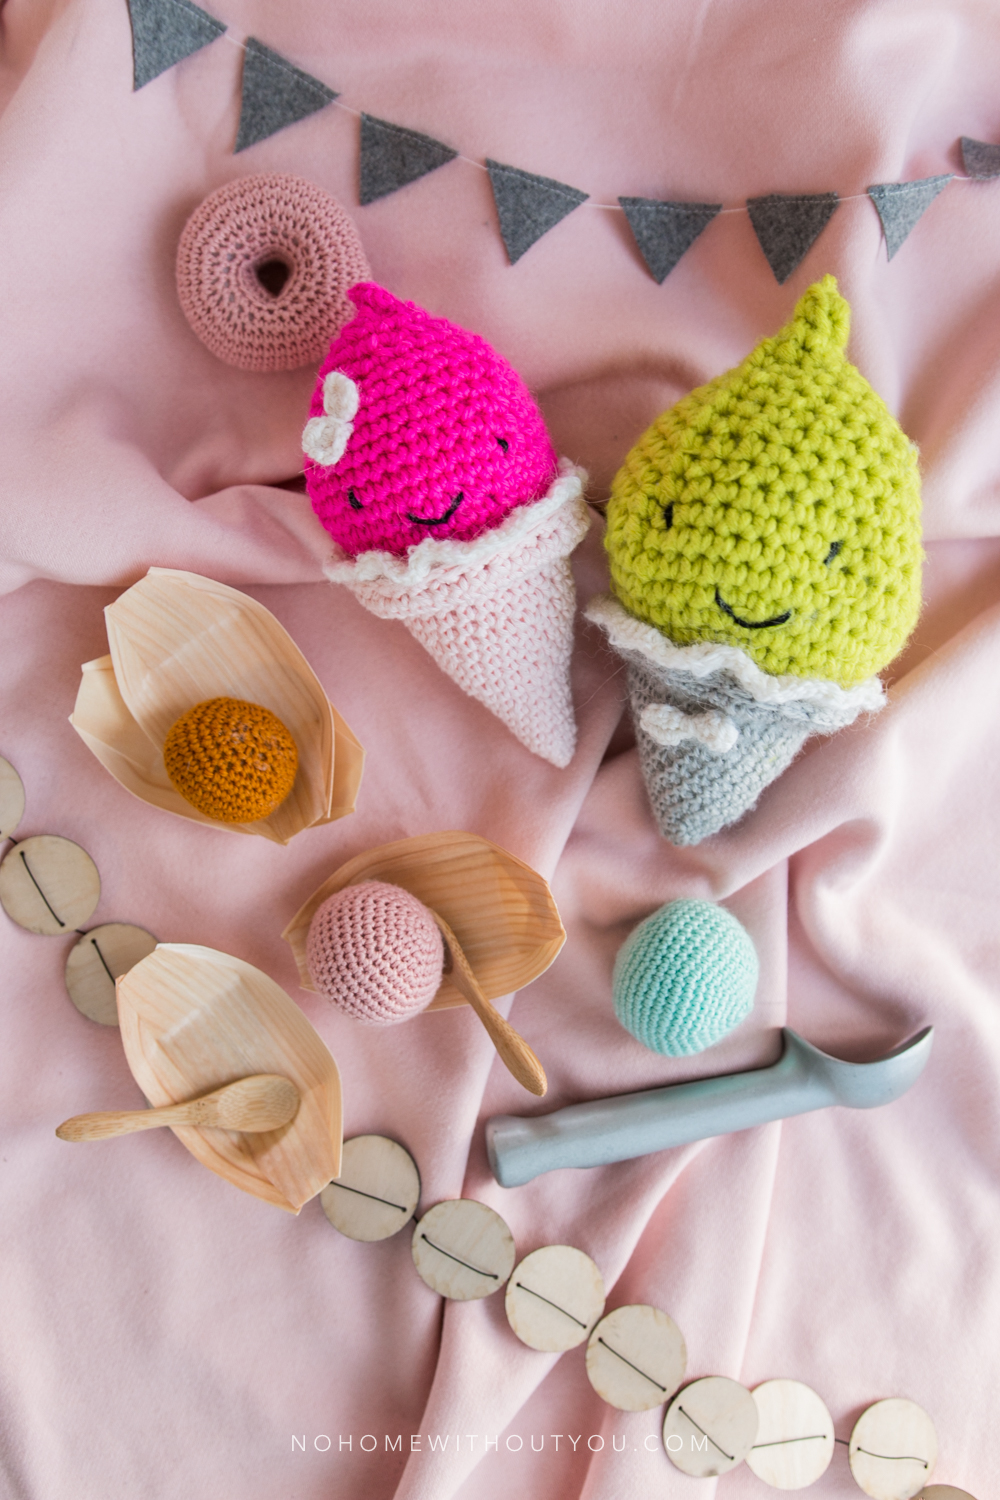 Ice Cream Party - Free amigurumi crochet pattern - No Home Without You blog (6 of 10)